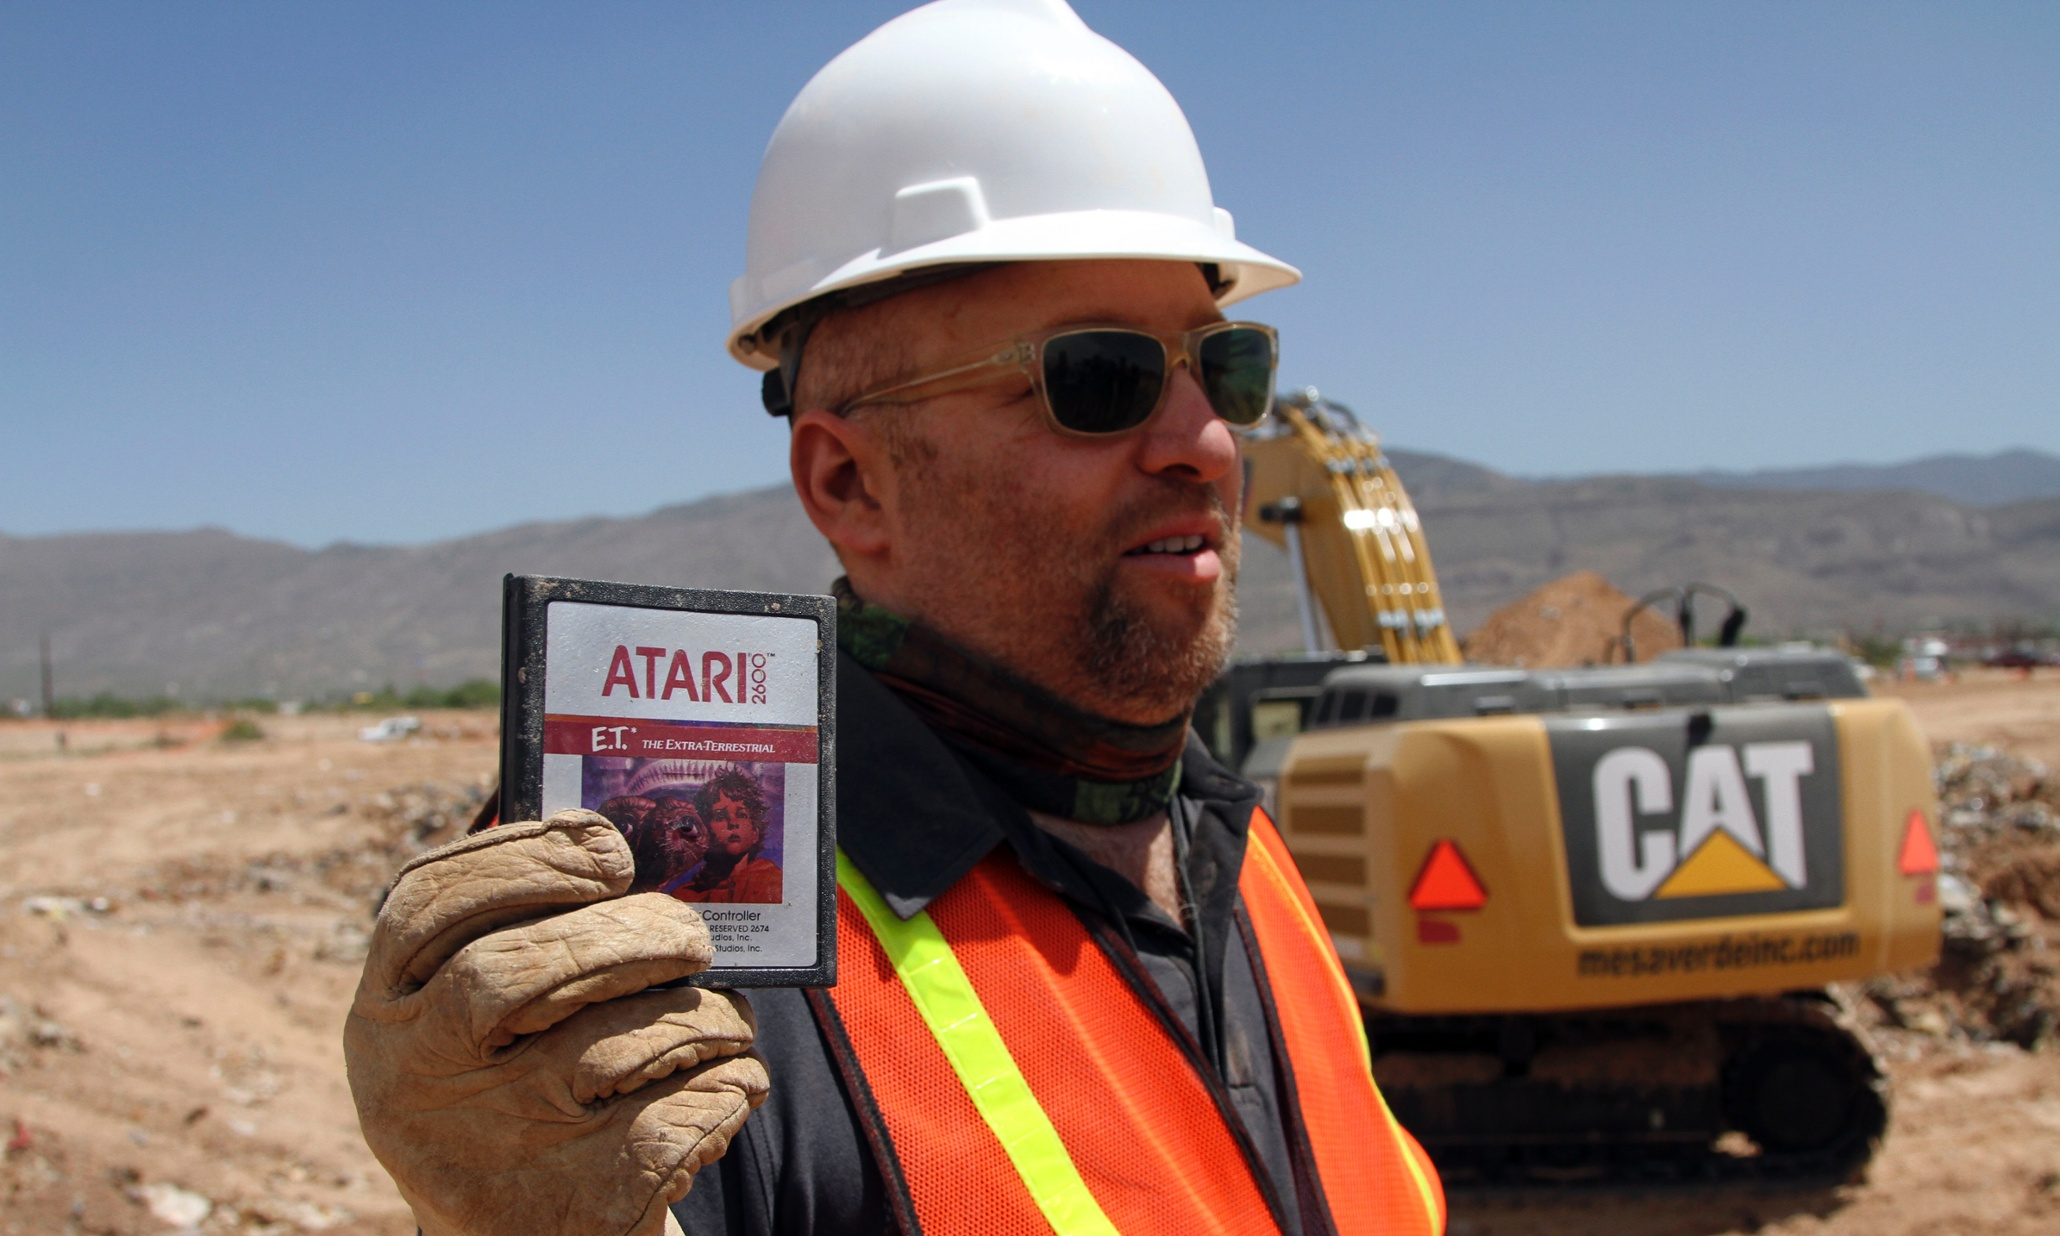 'A golden shining moment': the true story behind Atari's ET, the worst video game ever